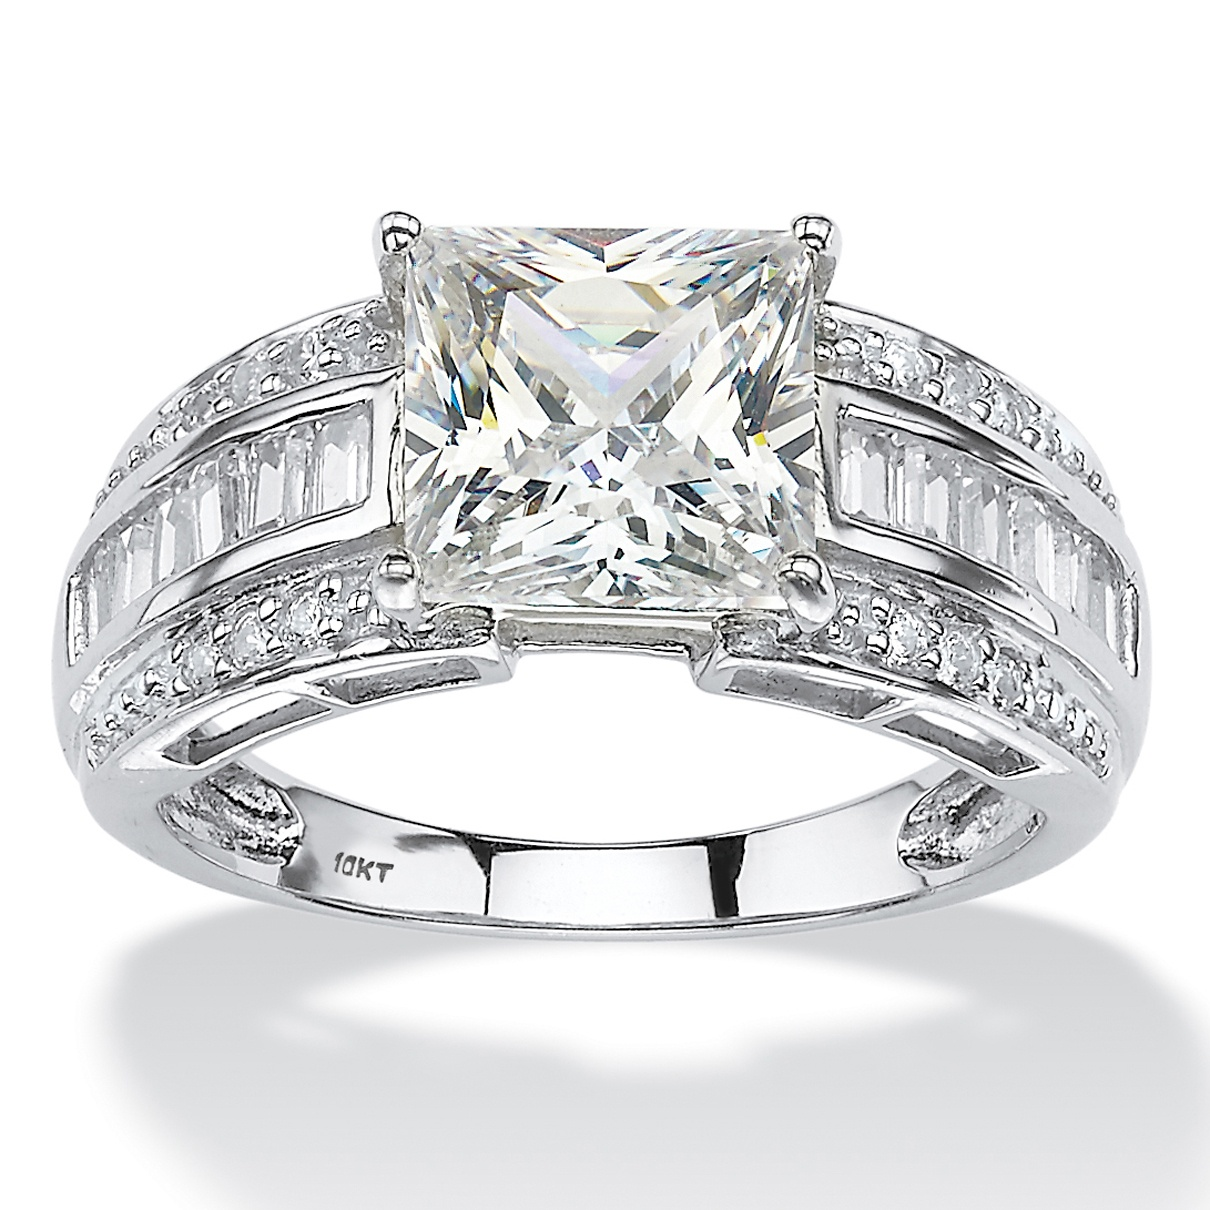 2.94 TCW Square-Cut and Step-Top Baguette Cubic Zirconia Engagement Ring in 10k White Gold